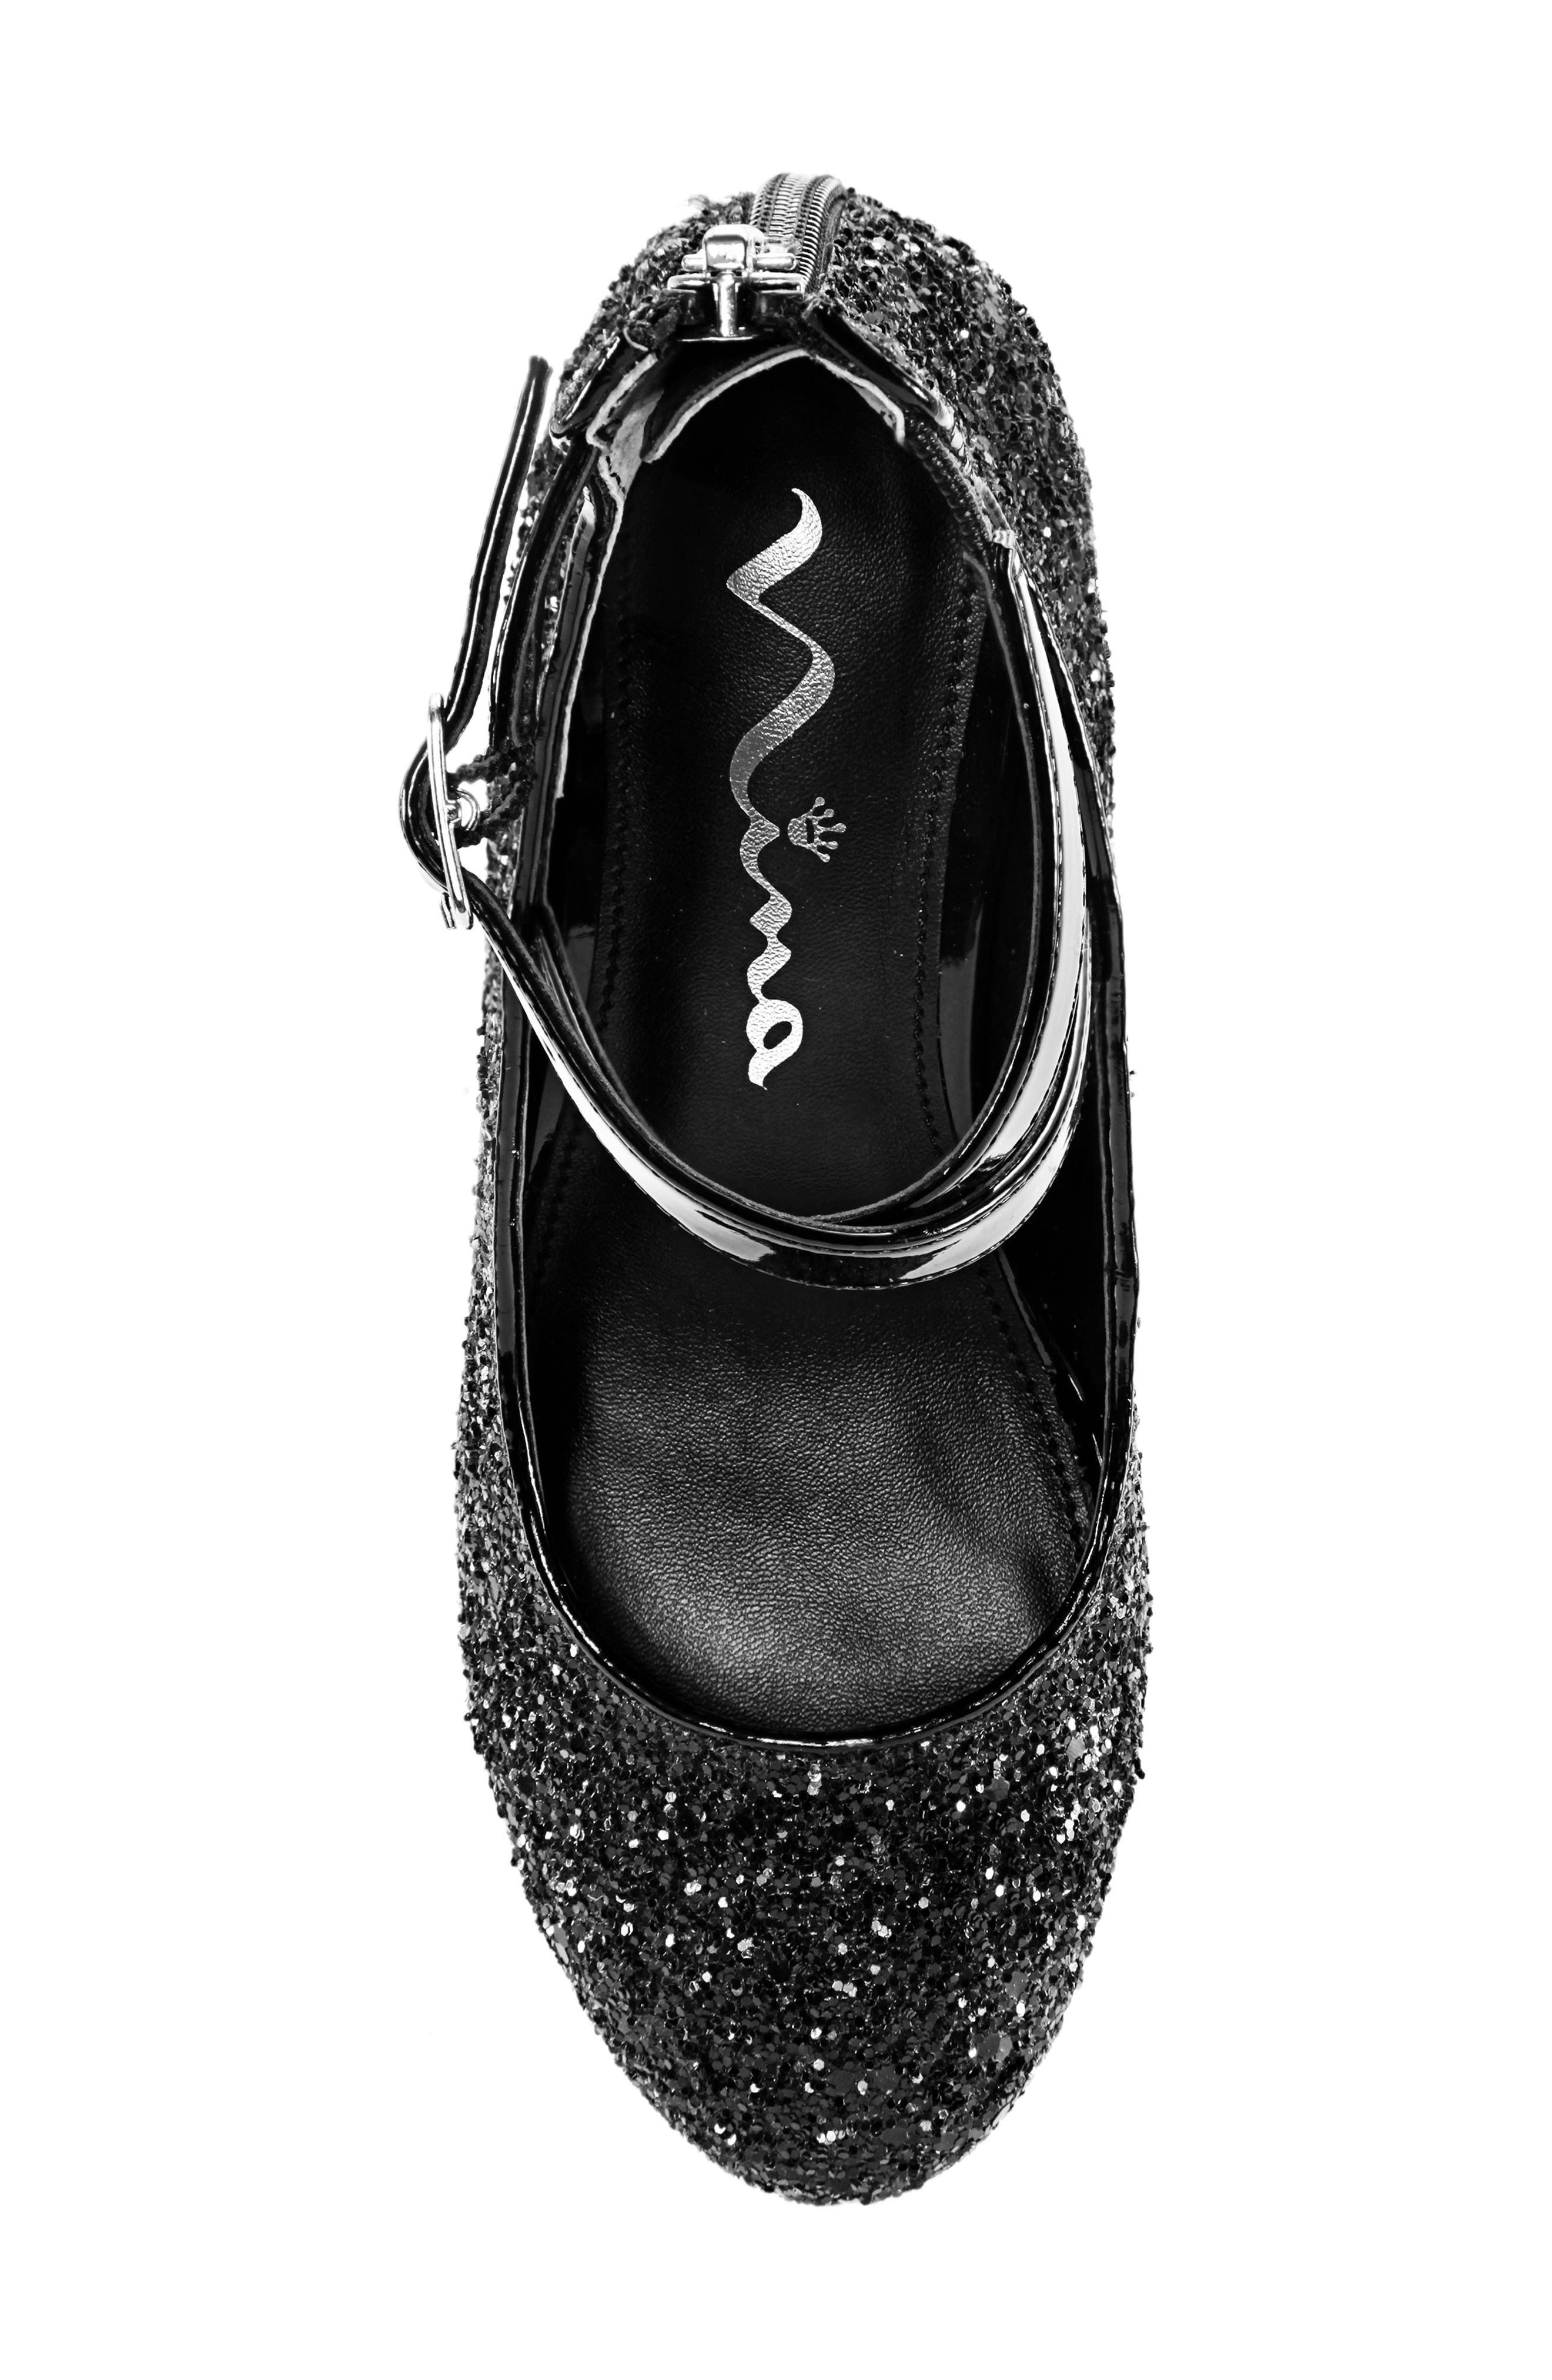 Deisy Glitter Block Heel Pump,                             Alternate thumbnail 5, color,                             BLACK CHUNK GLITTER/ PATENT